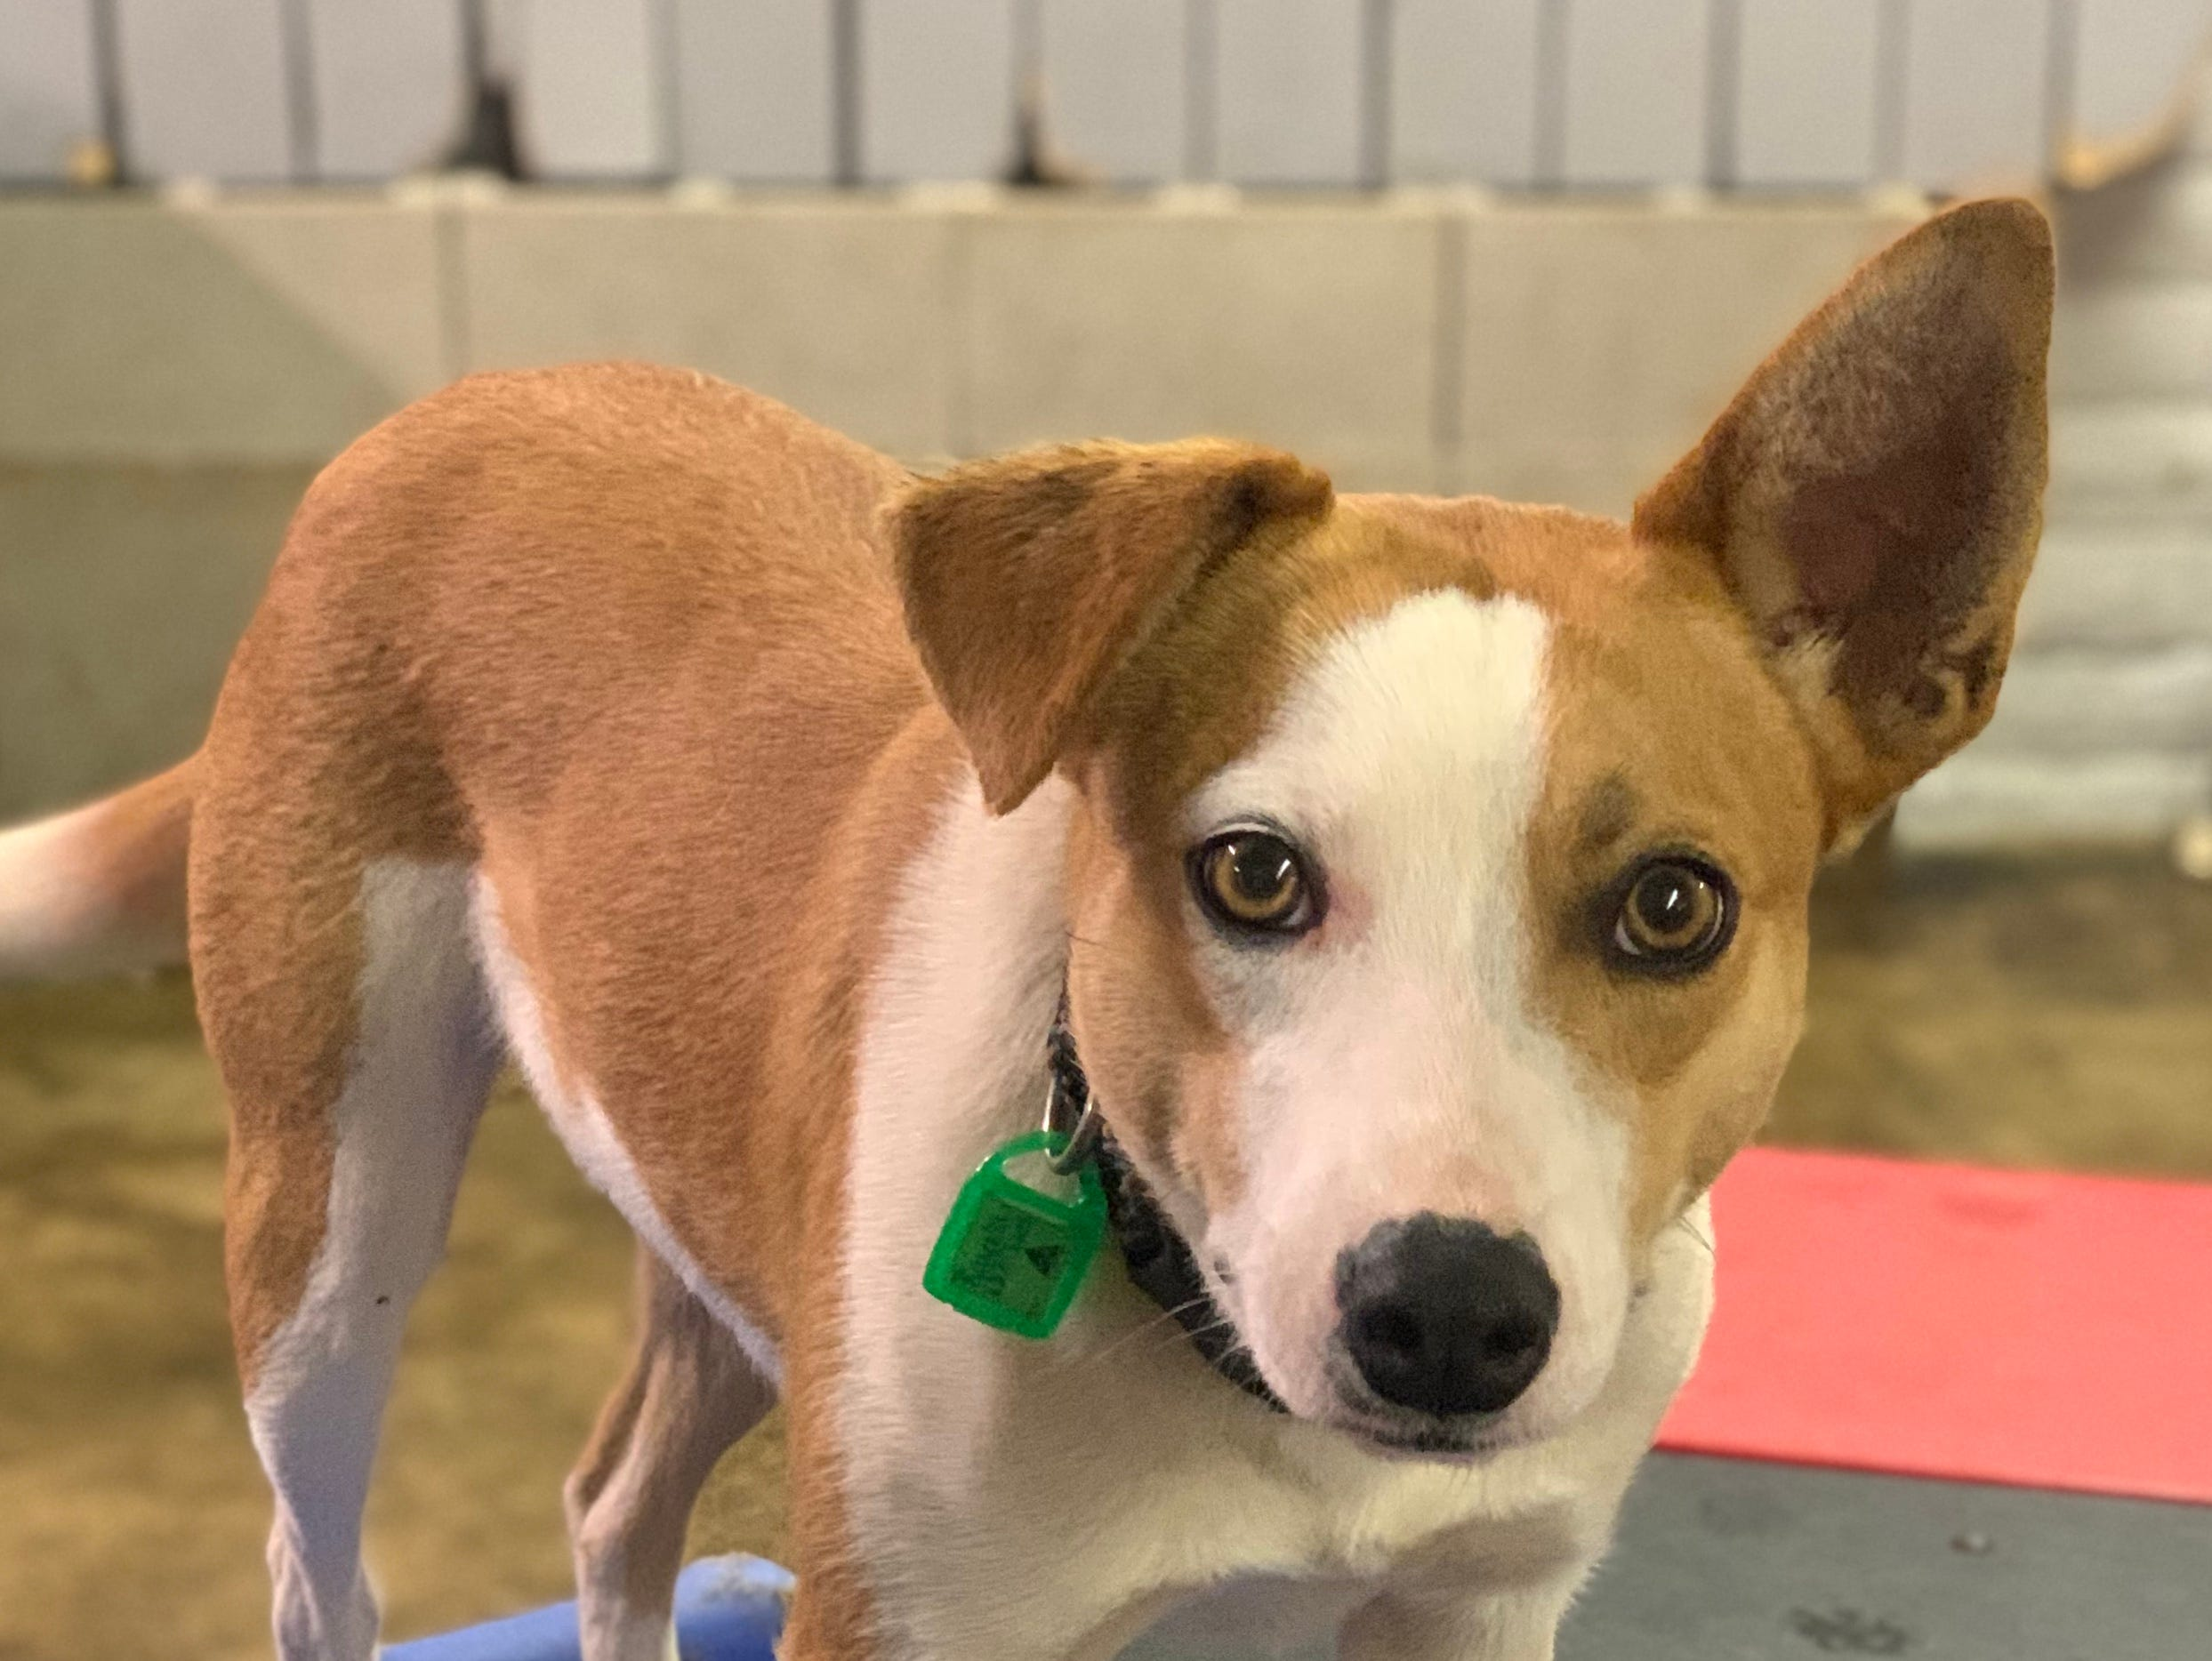 Rayna is a female cattle dog mix who weighs about 30 pounds. She's sweet and ready to please. She does okay with other dogs, but no cats. She loves men. She's learning leash and house manners. Visit Tails of Rescue Adoption Center, 981 Lake Blvd., Redding. Call 448-7444. Go to http://tailsofrescue.org.